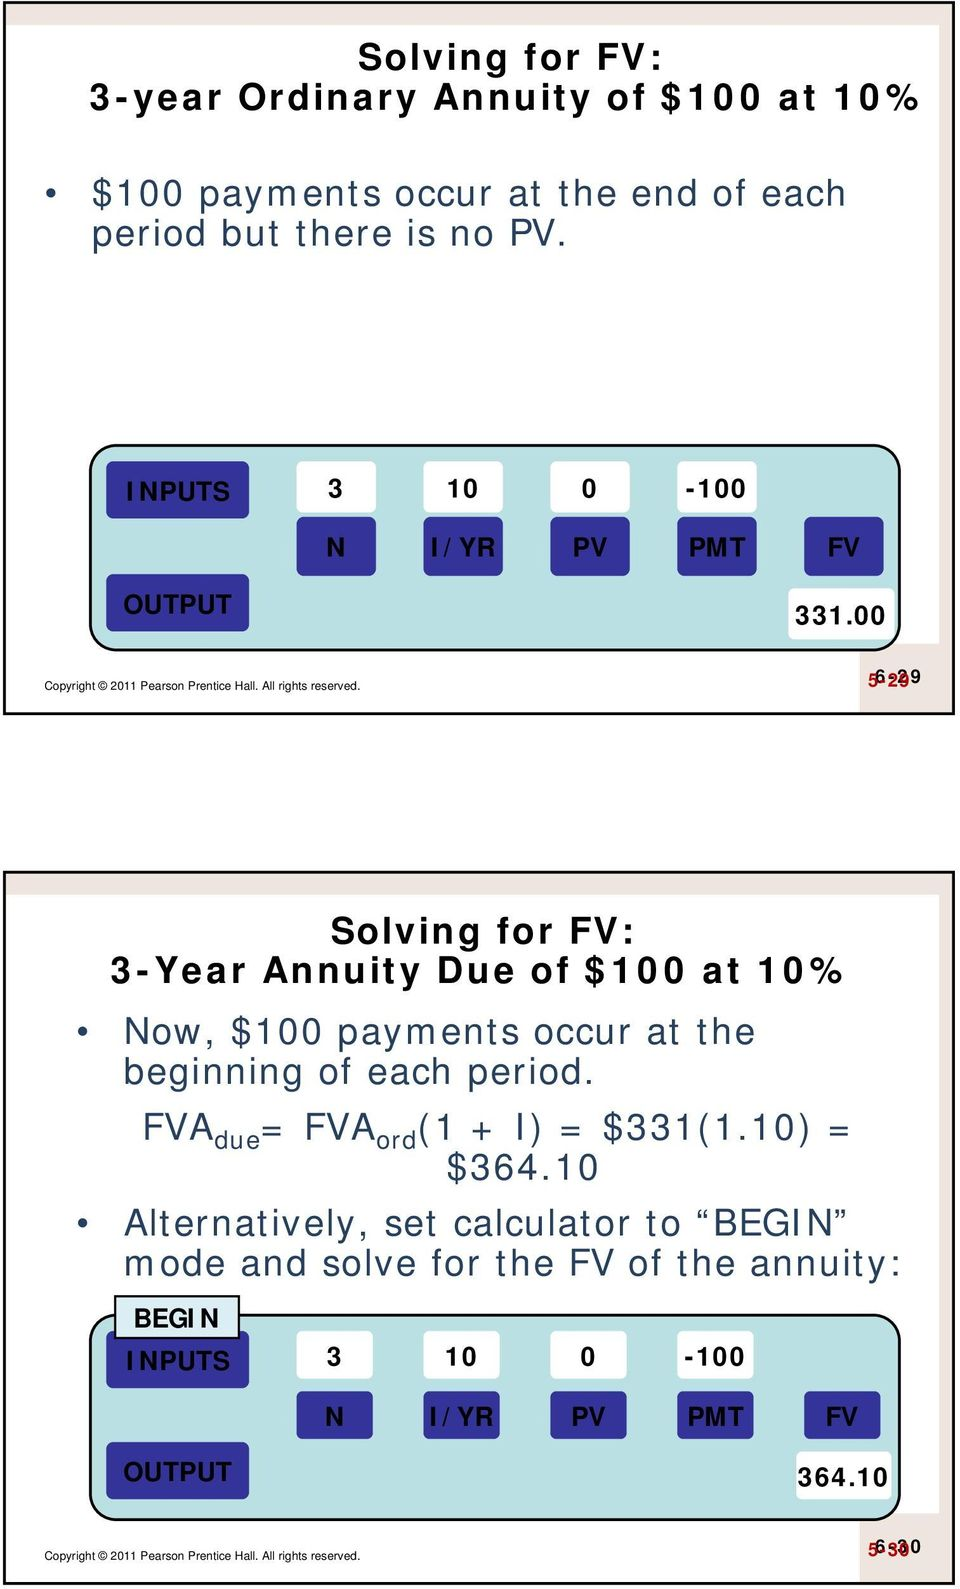 00 6-29 5-29 Solving for FV: 3-Year Annuity Due of $100 at 10% Now, $100 payments occur at the beginning of each period.